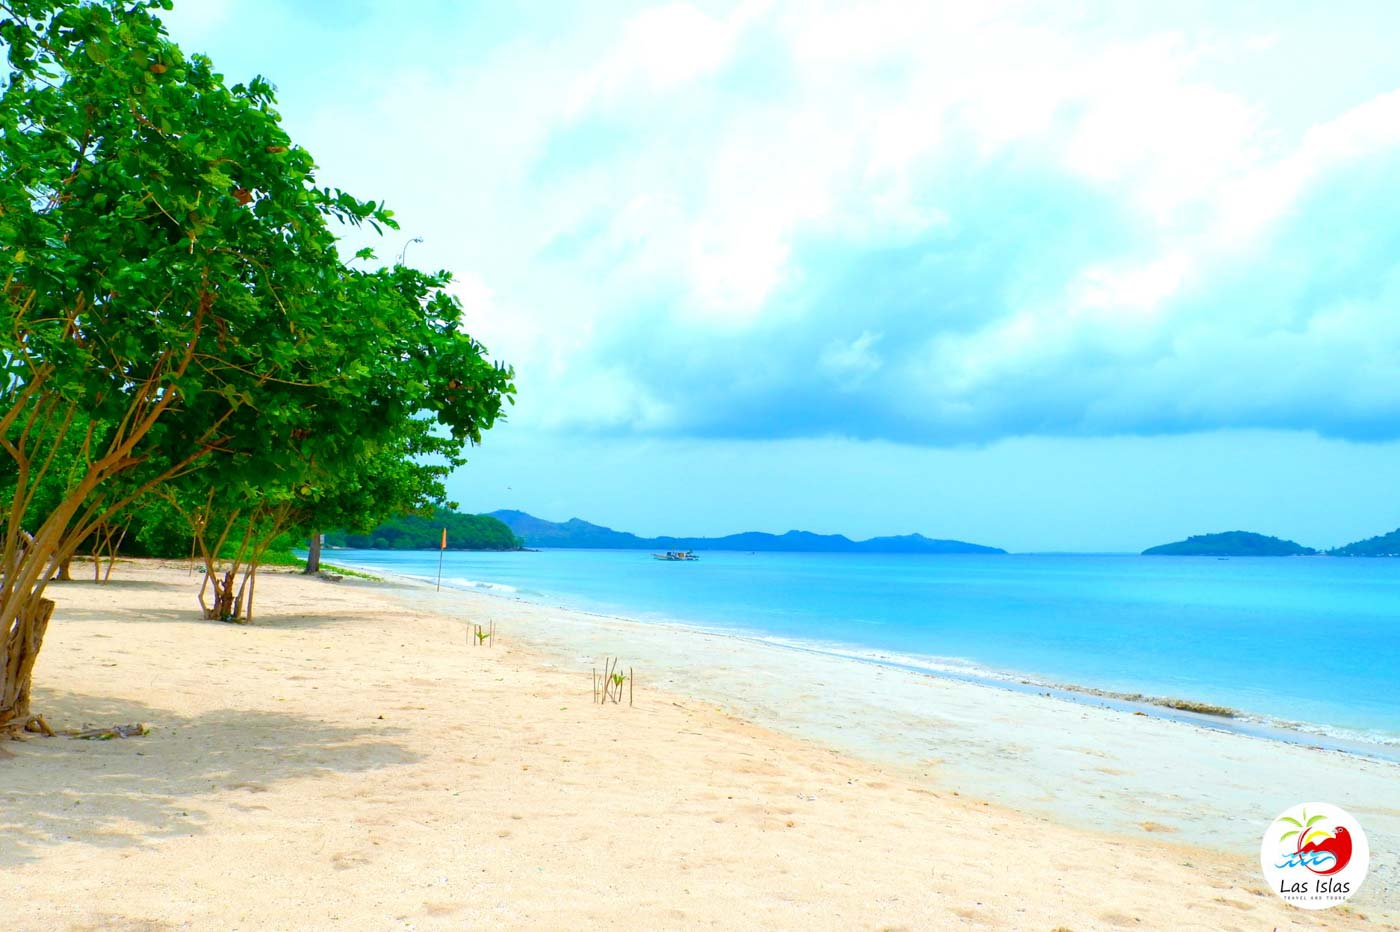 WHITE BEACH. Just one of Sicogon's fine stretches of sand. Photo courtesy of Las Islas Travel and Tours